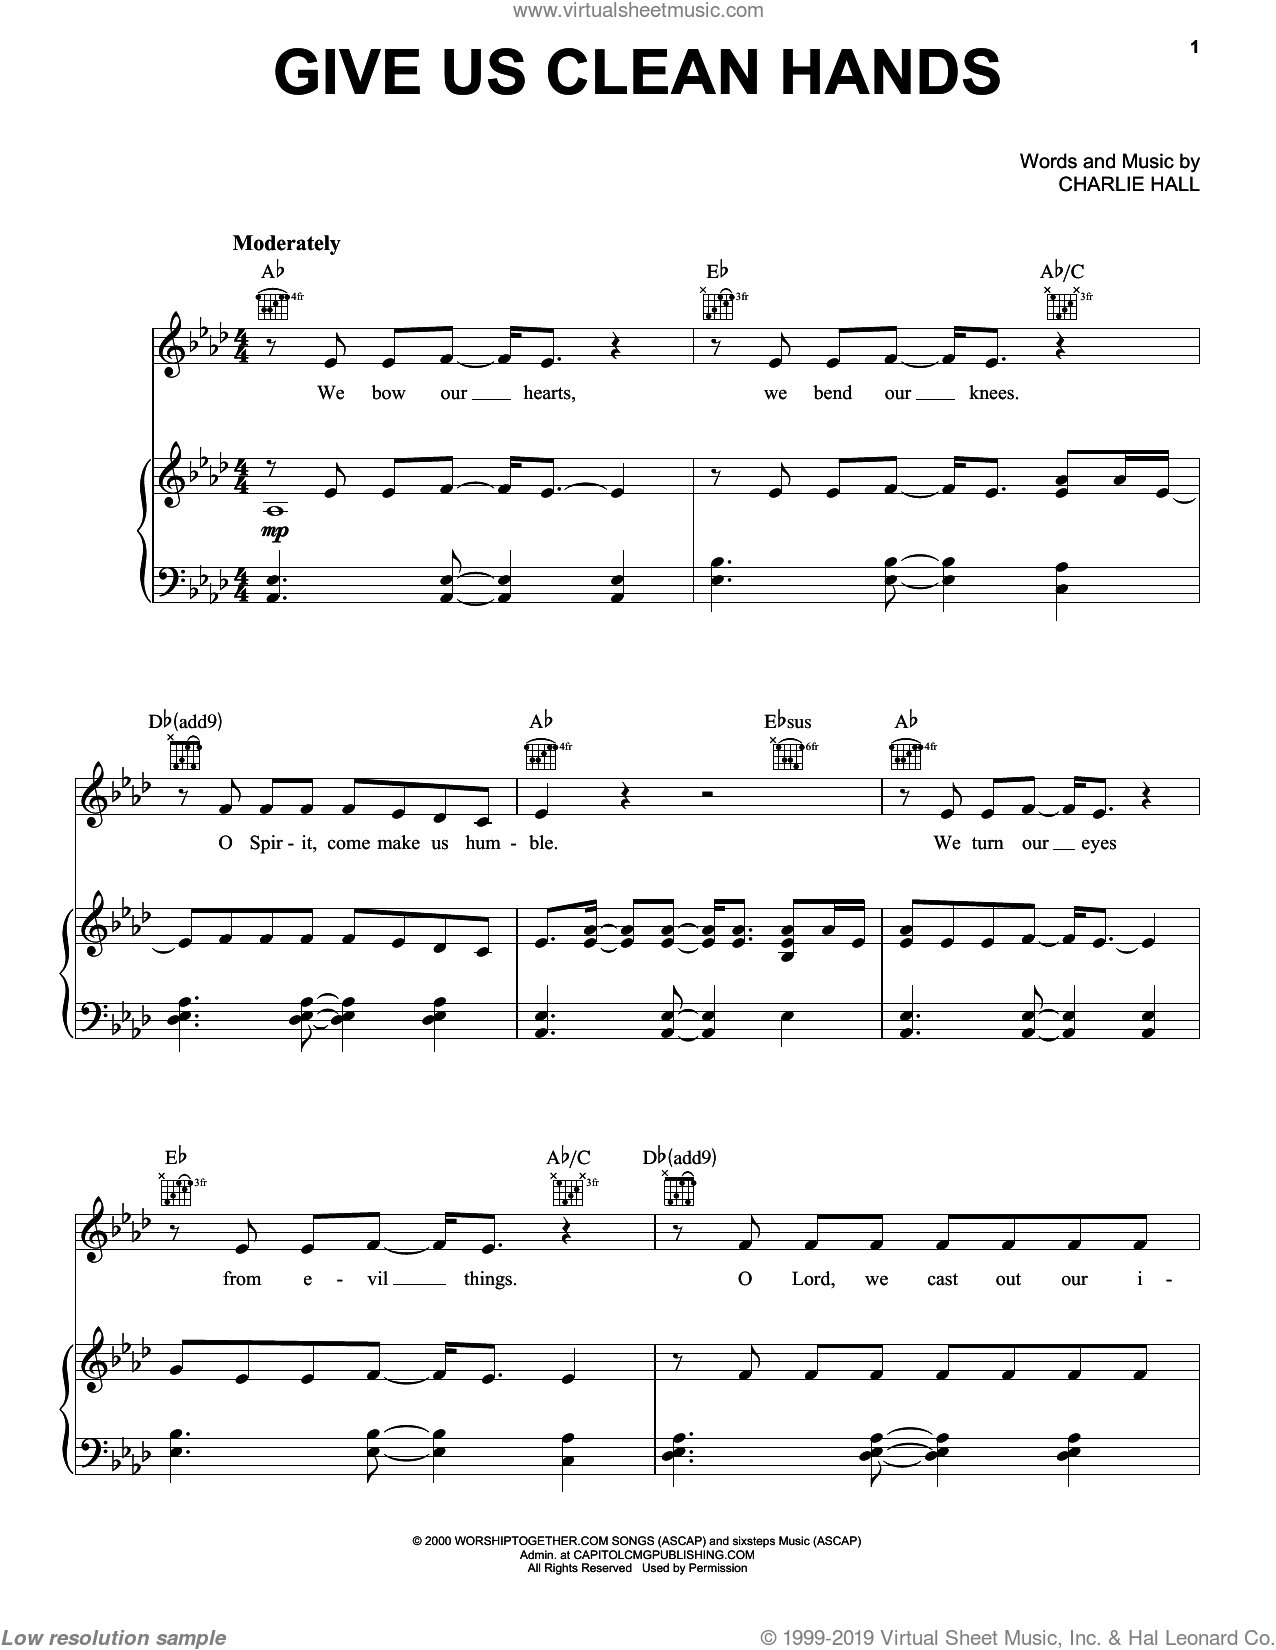 Give Us Clean Hands sheet music for voice, piano or guitar by Chris Tomlin and Charlie Hall, intermediate